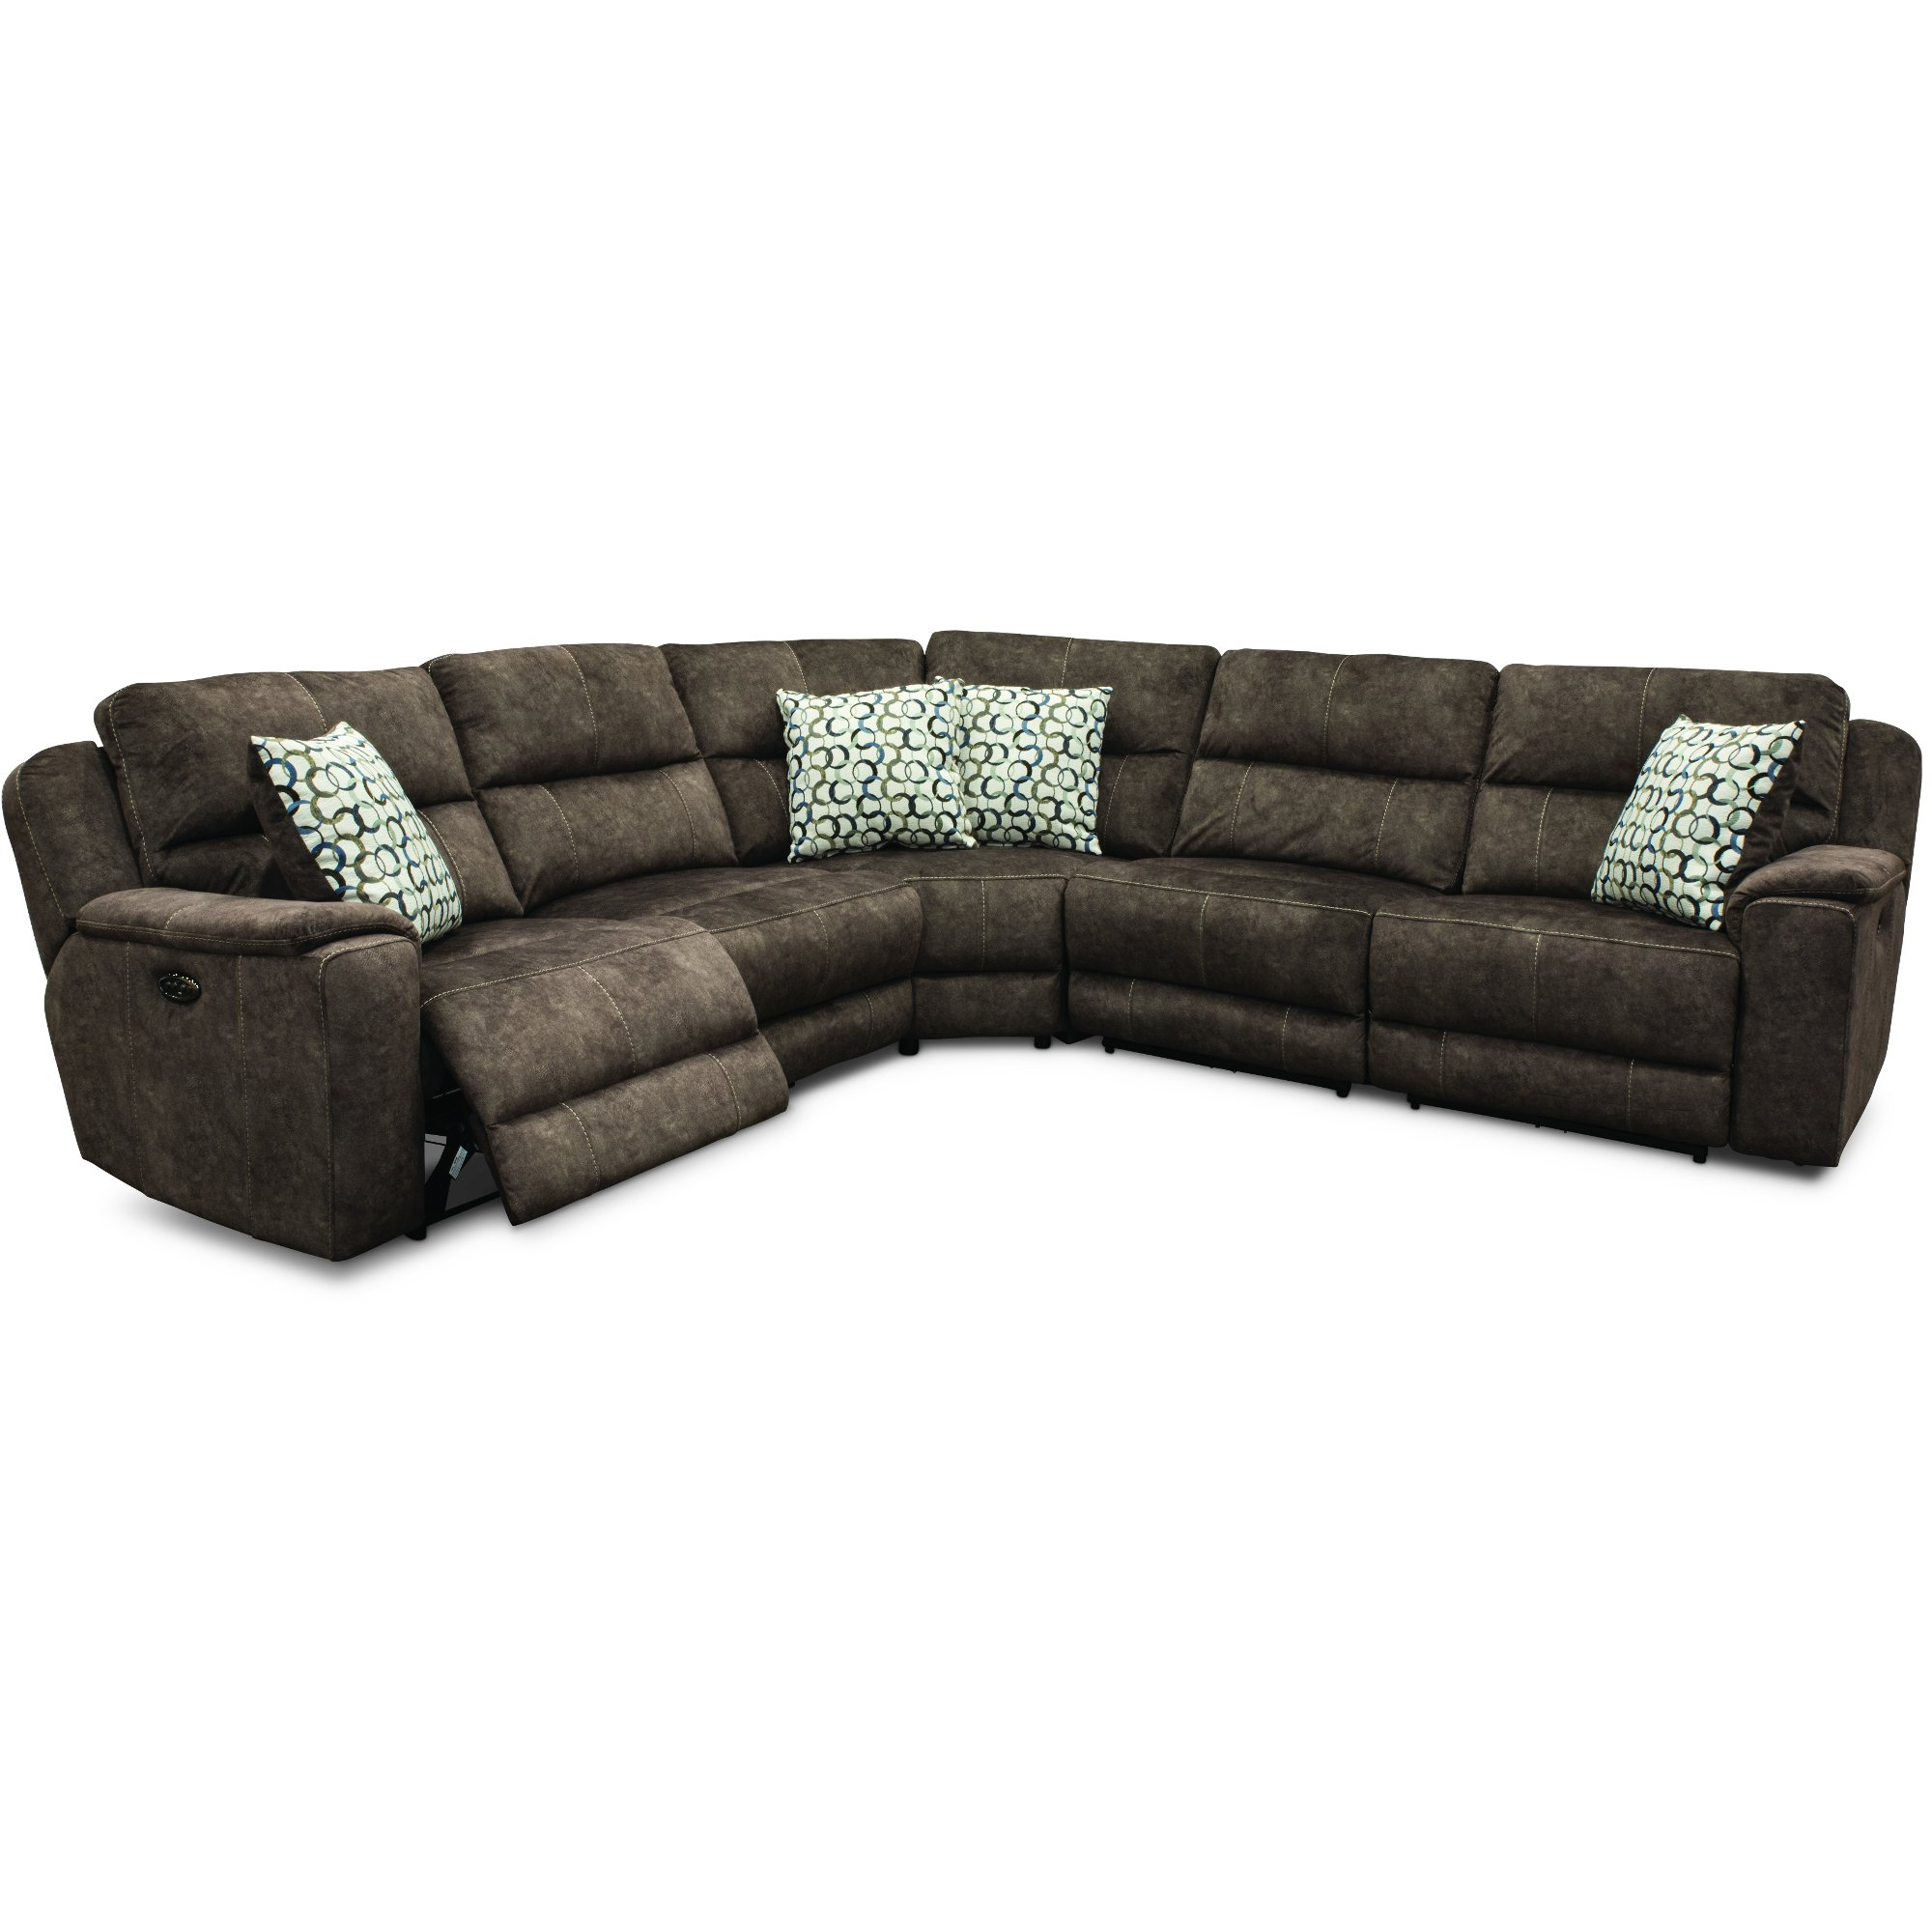 Coco Brown 5 Piece Reclining Sectional Sofa Imprint Rc Willey Furniture